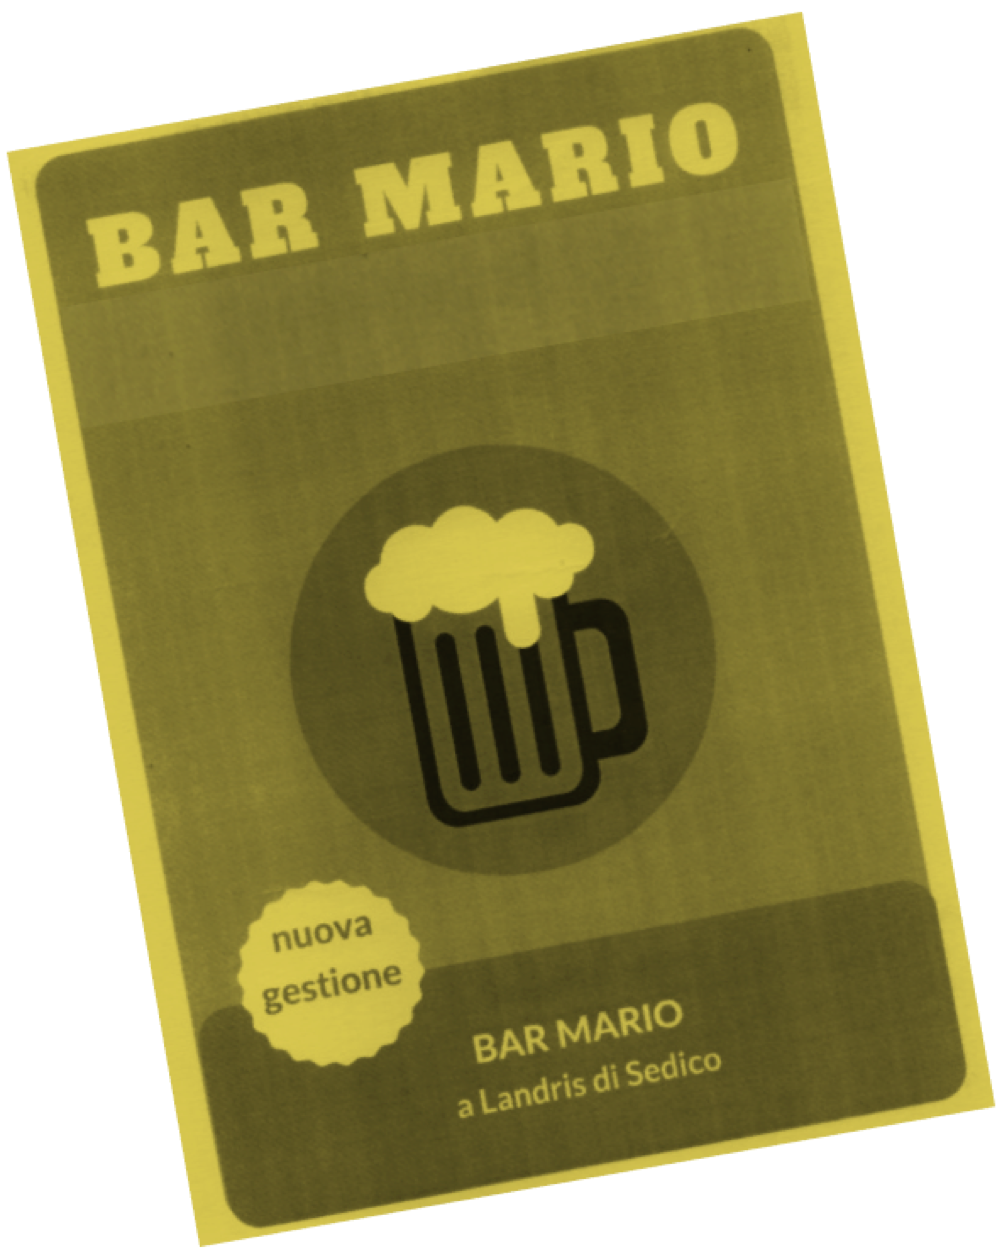 BAR MARIO | Landris